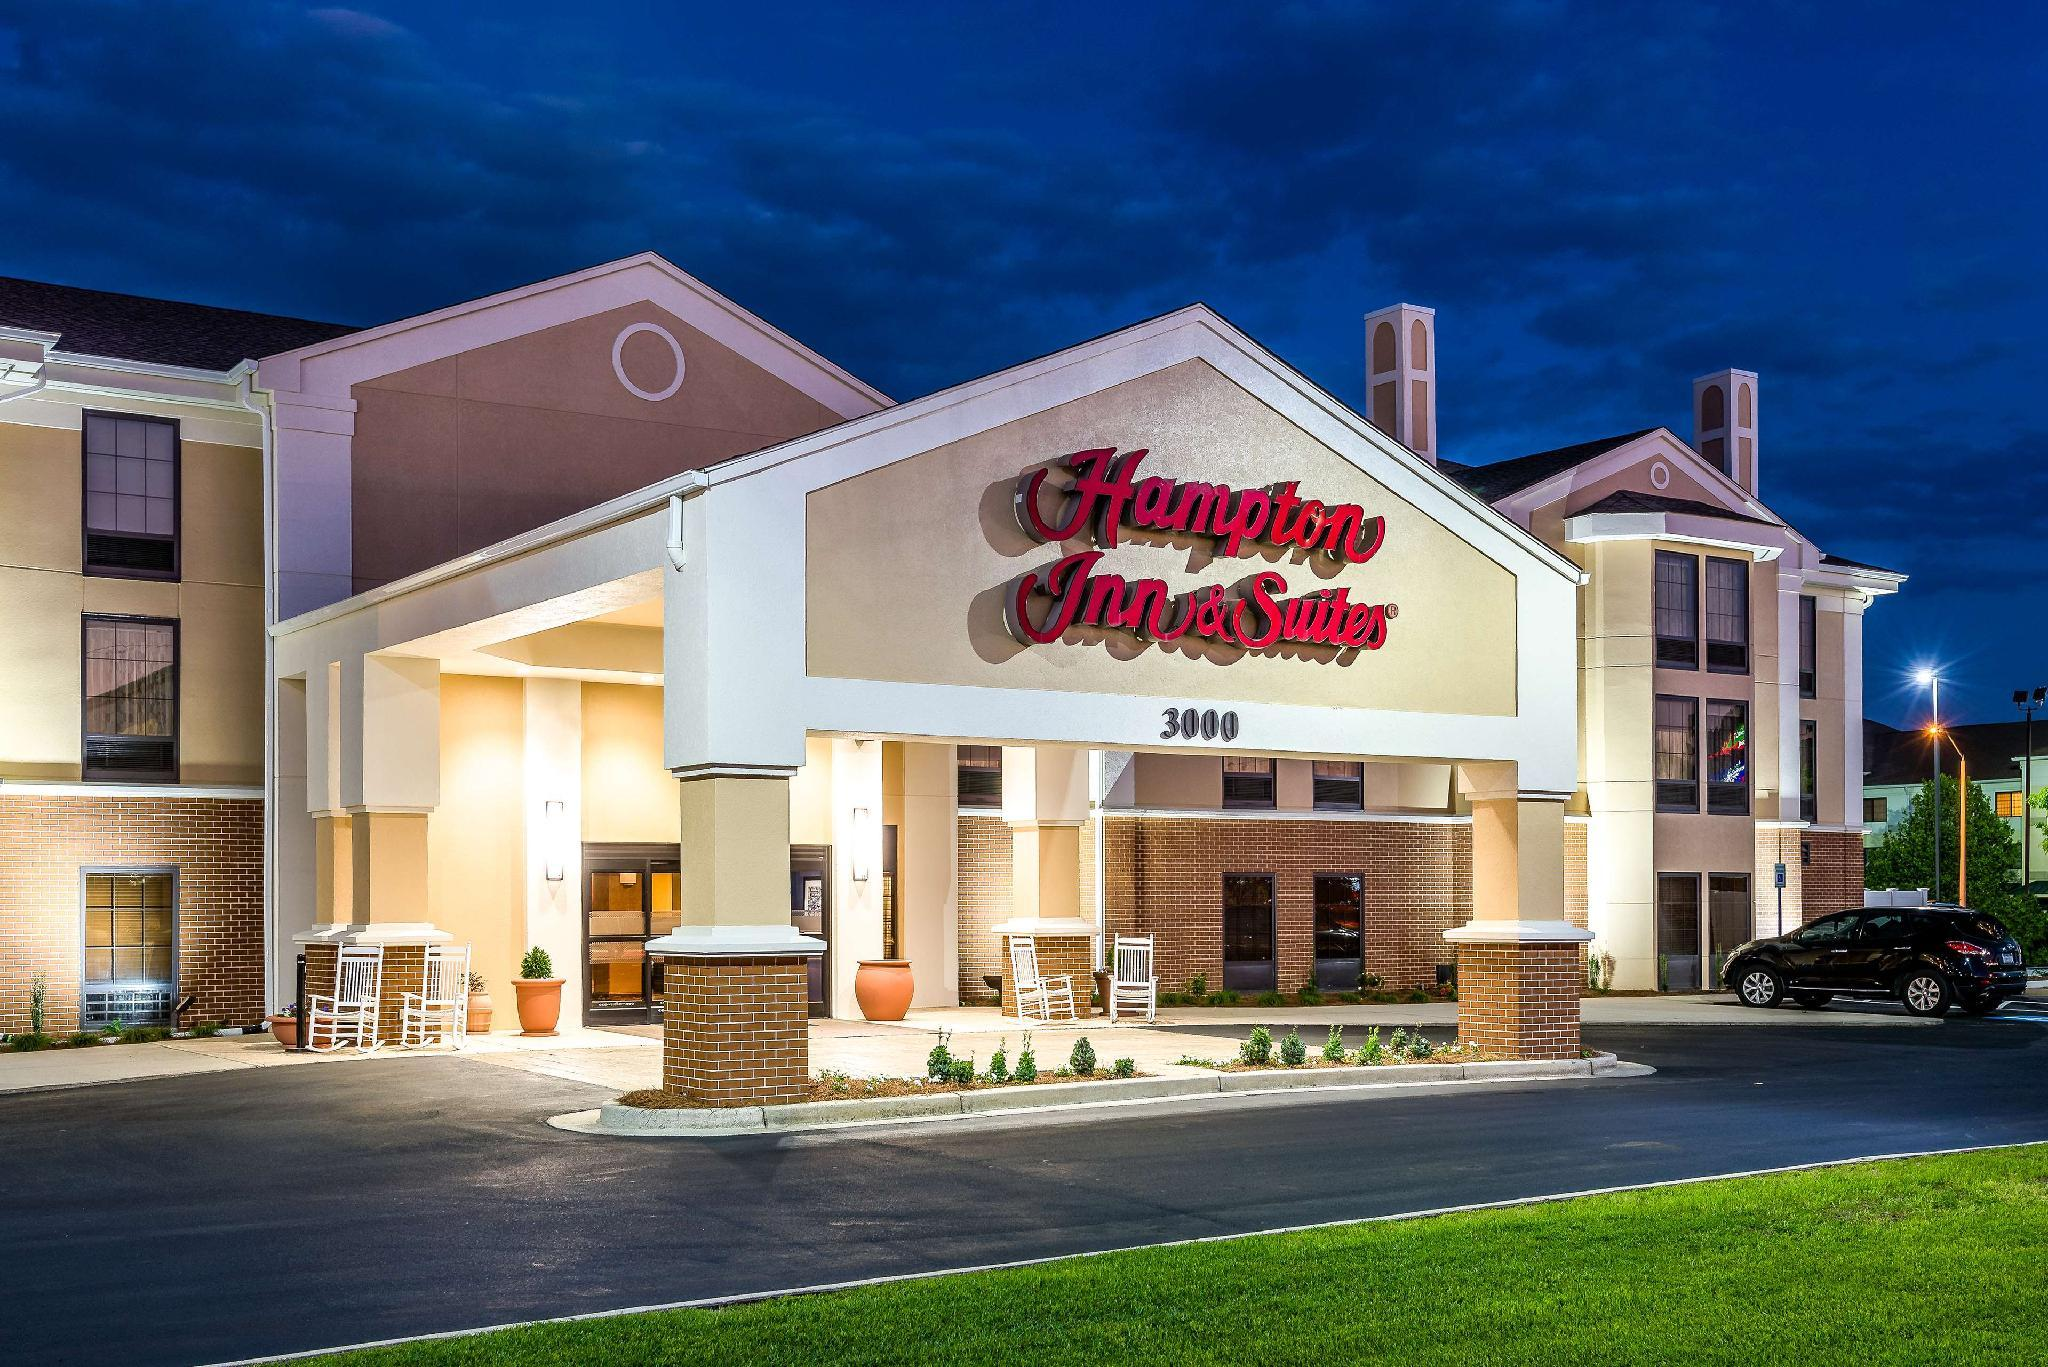 Hampton Inn and Suites Florence Civic Center, Florence